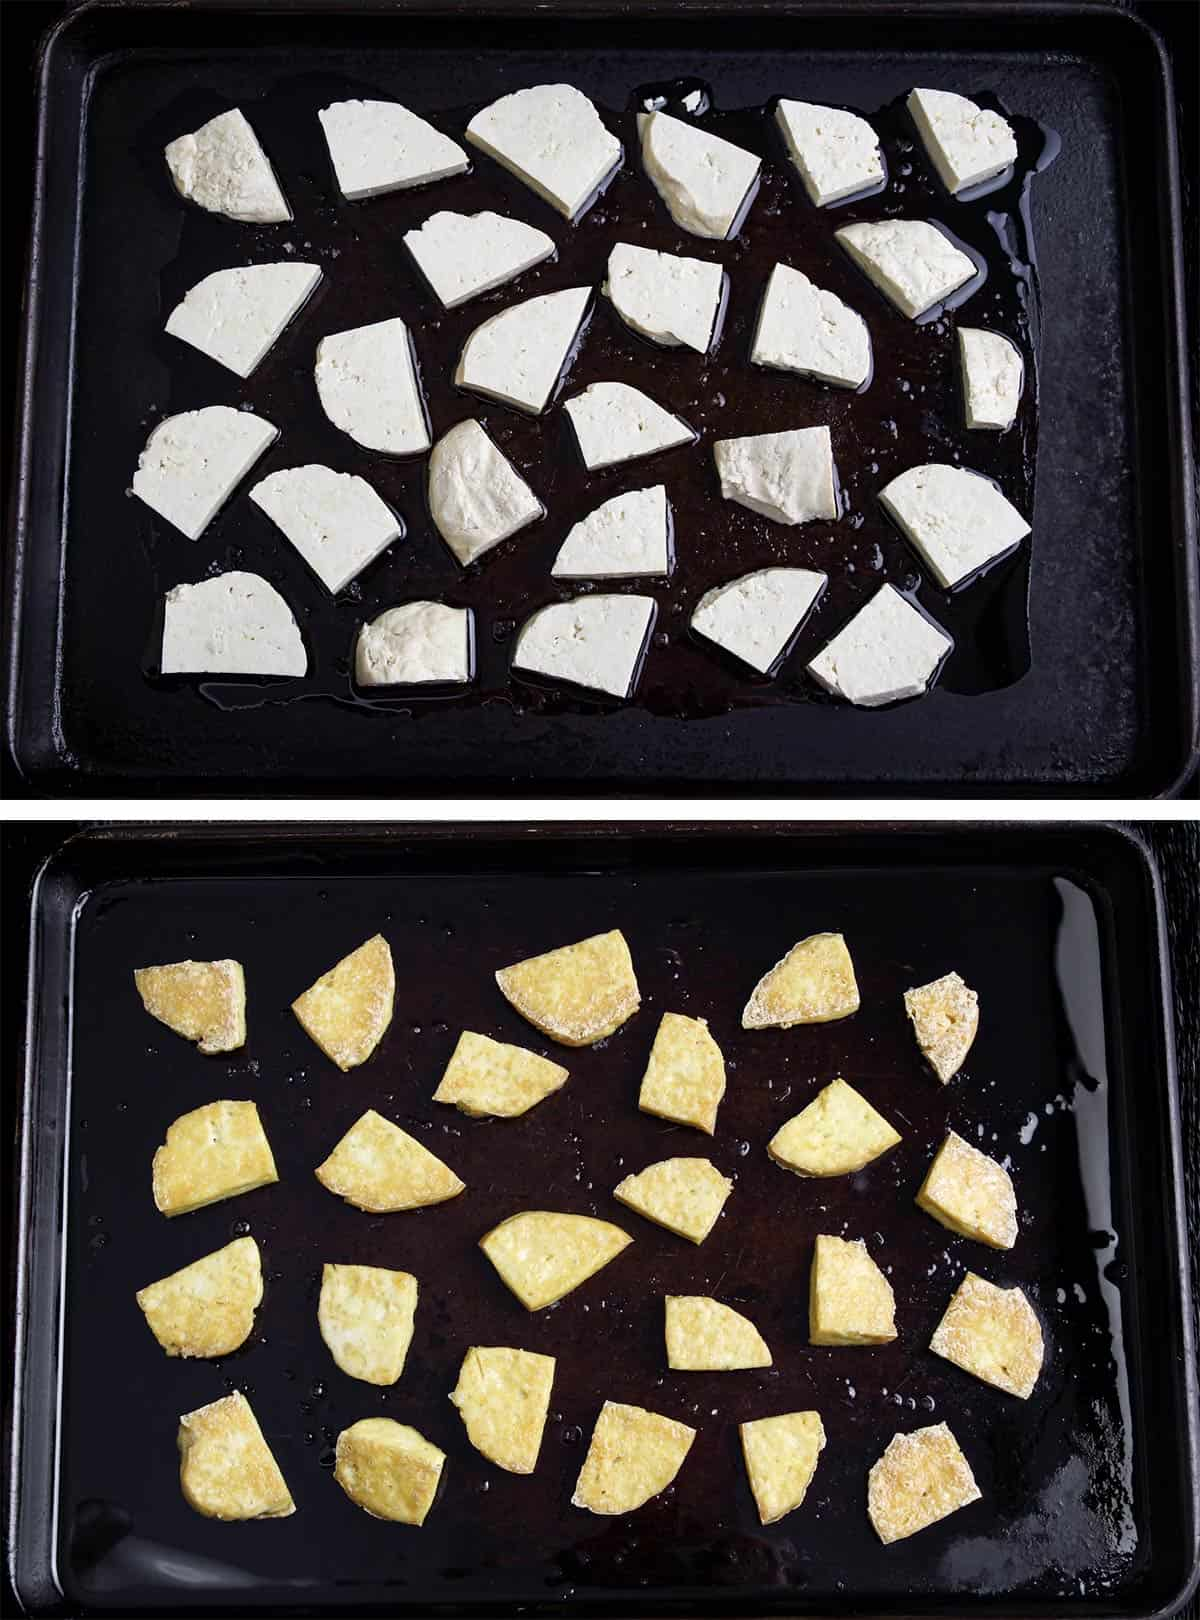 Baked Tofu Before and After